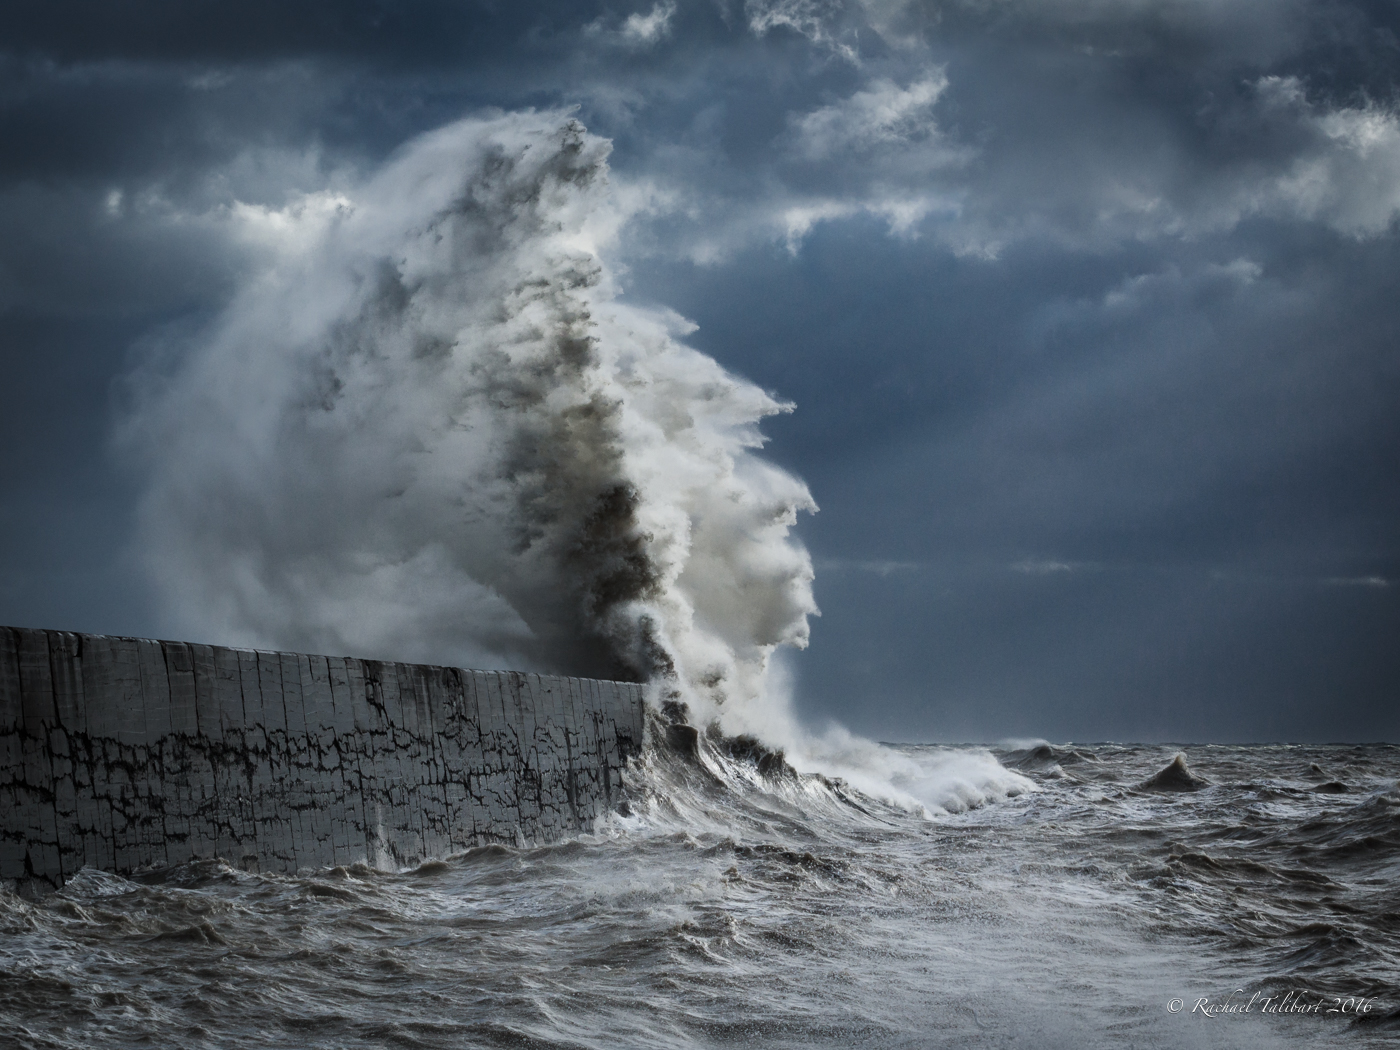 newhaven wave